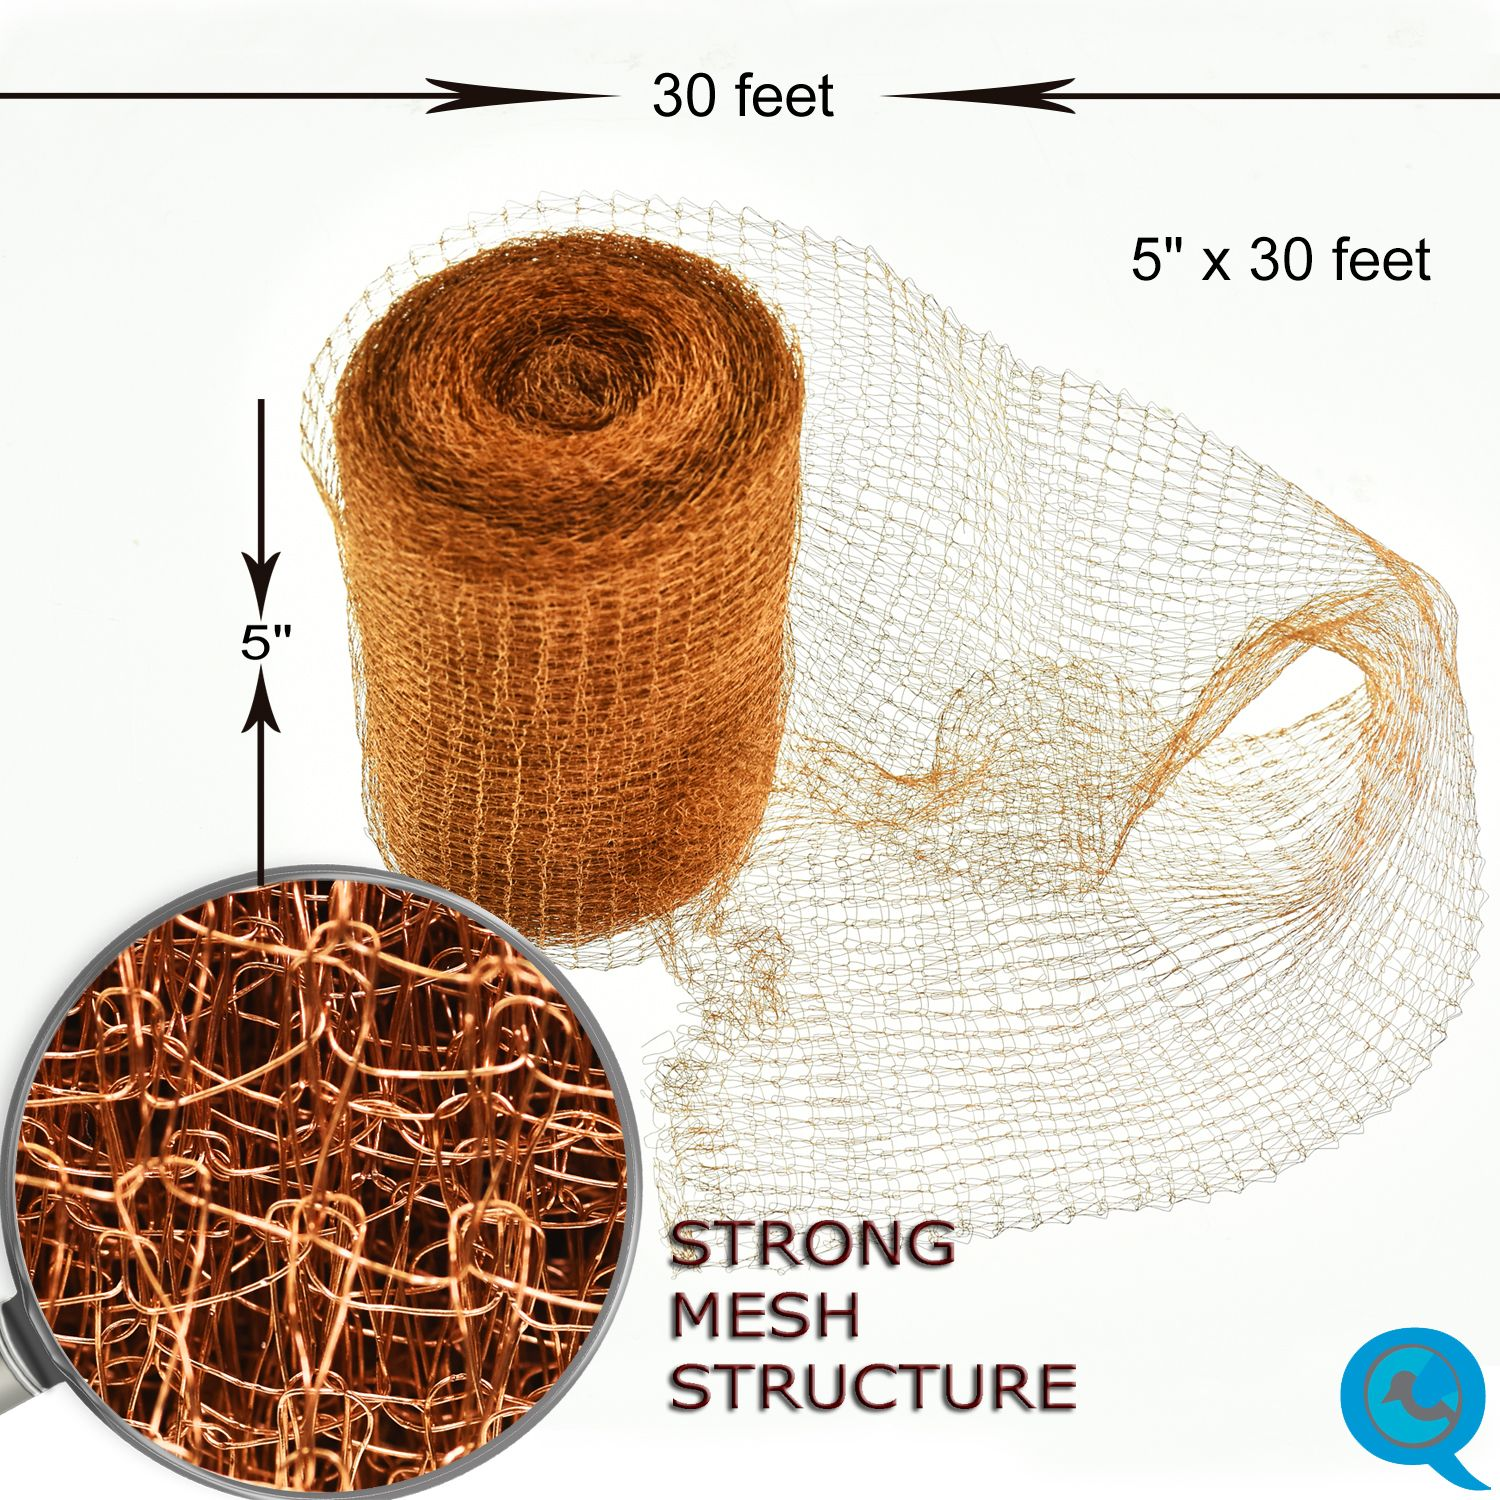 Pin By Wisely Shopping On Copper Mesh For Pest And Rodent Control Distilling Art Projects Copper Roll Rodents Insect Control